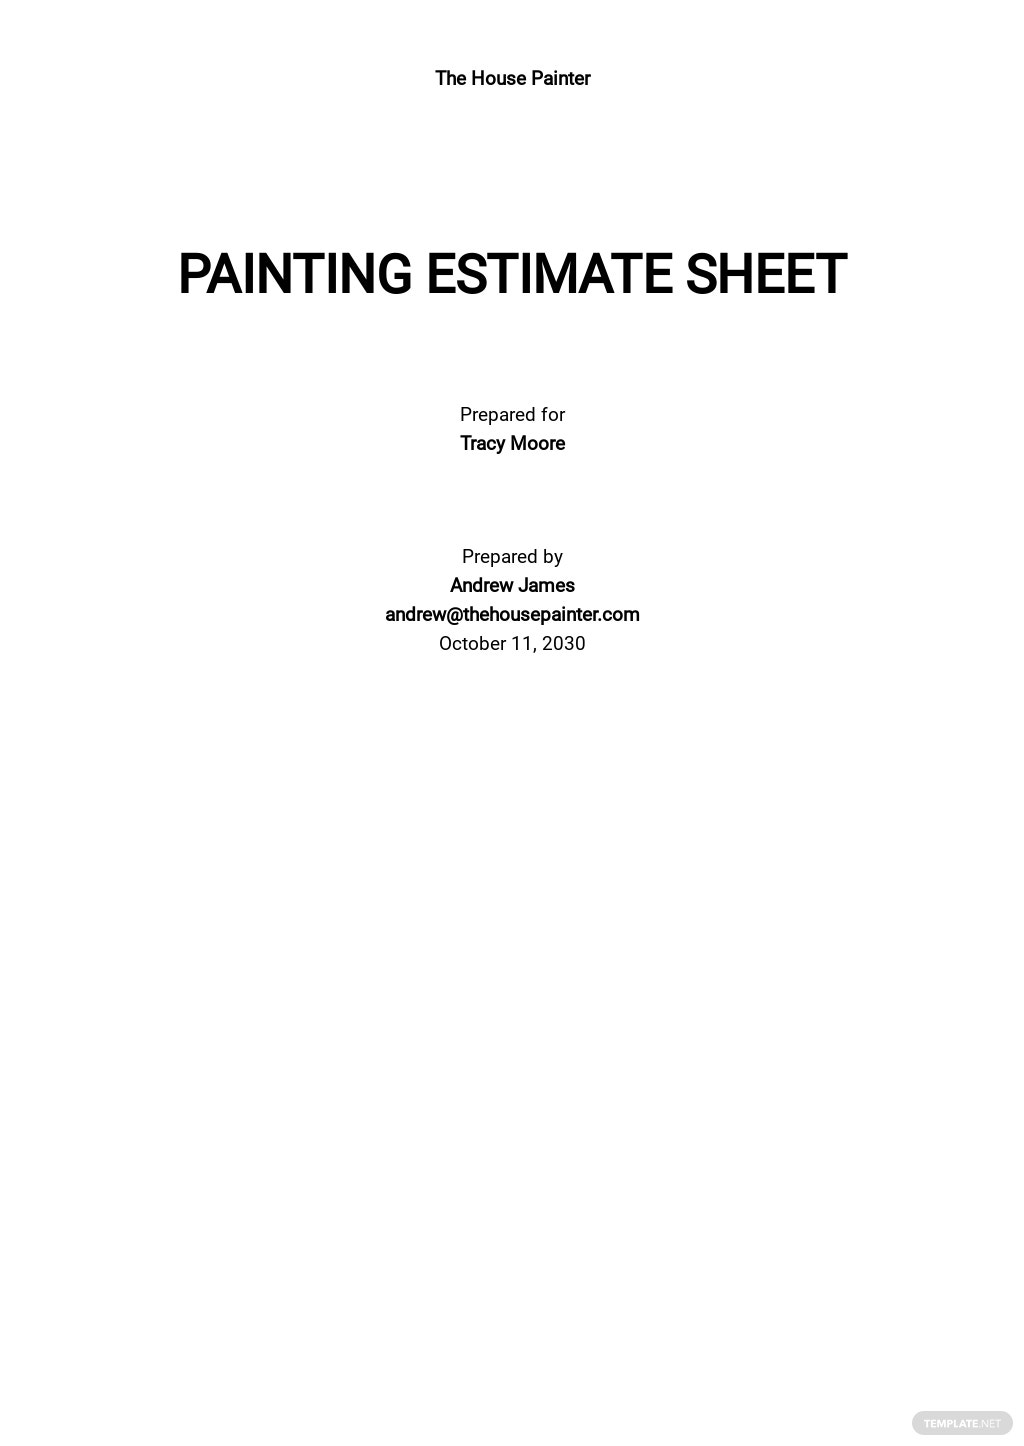 Painting Estimate Sheet Template